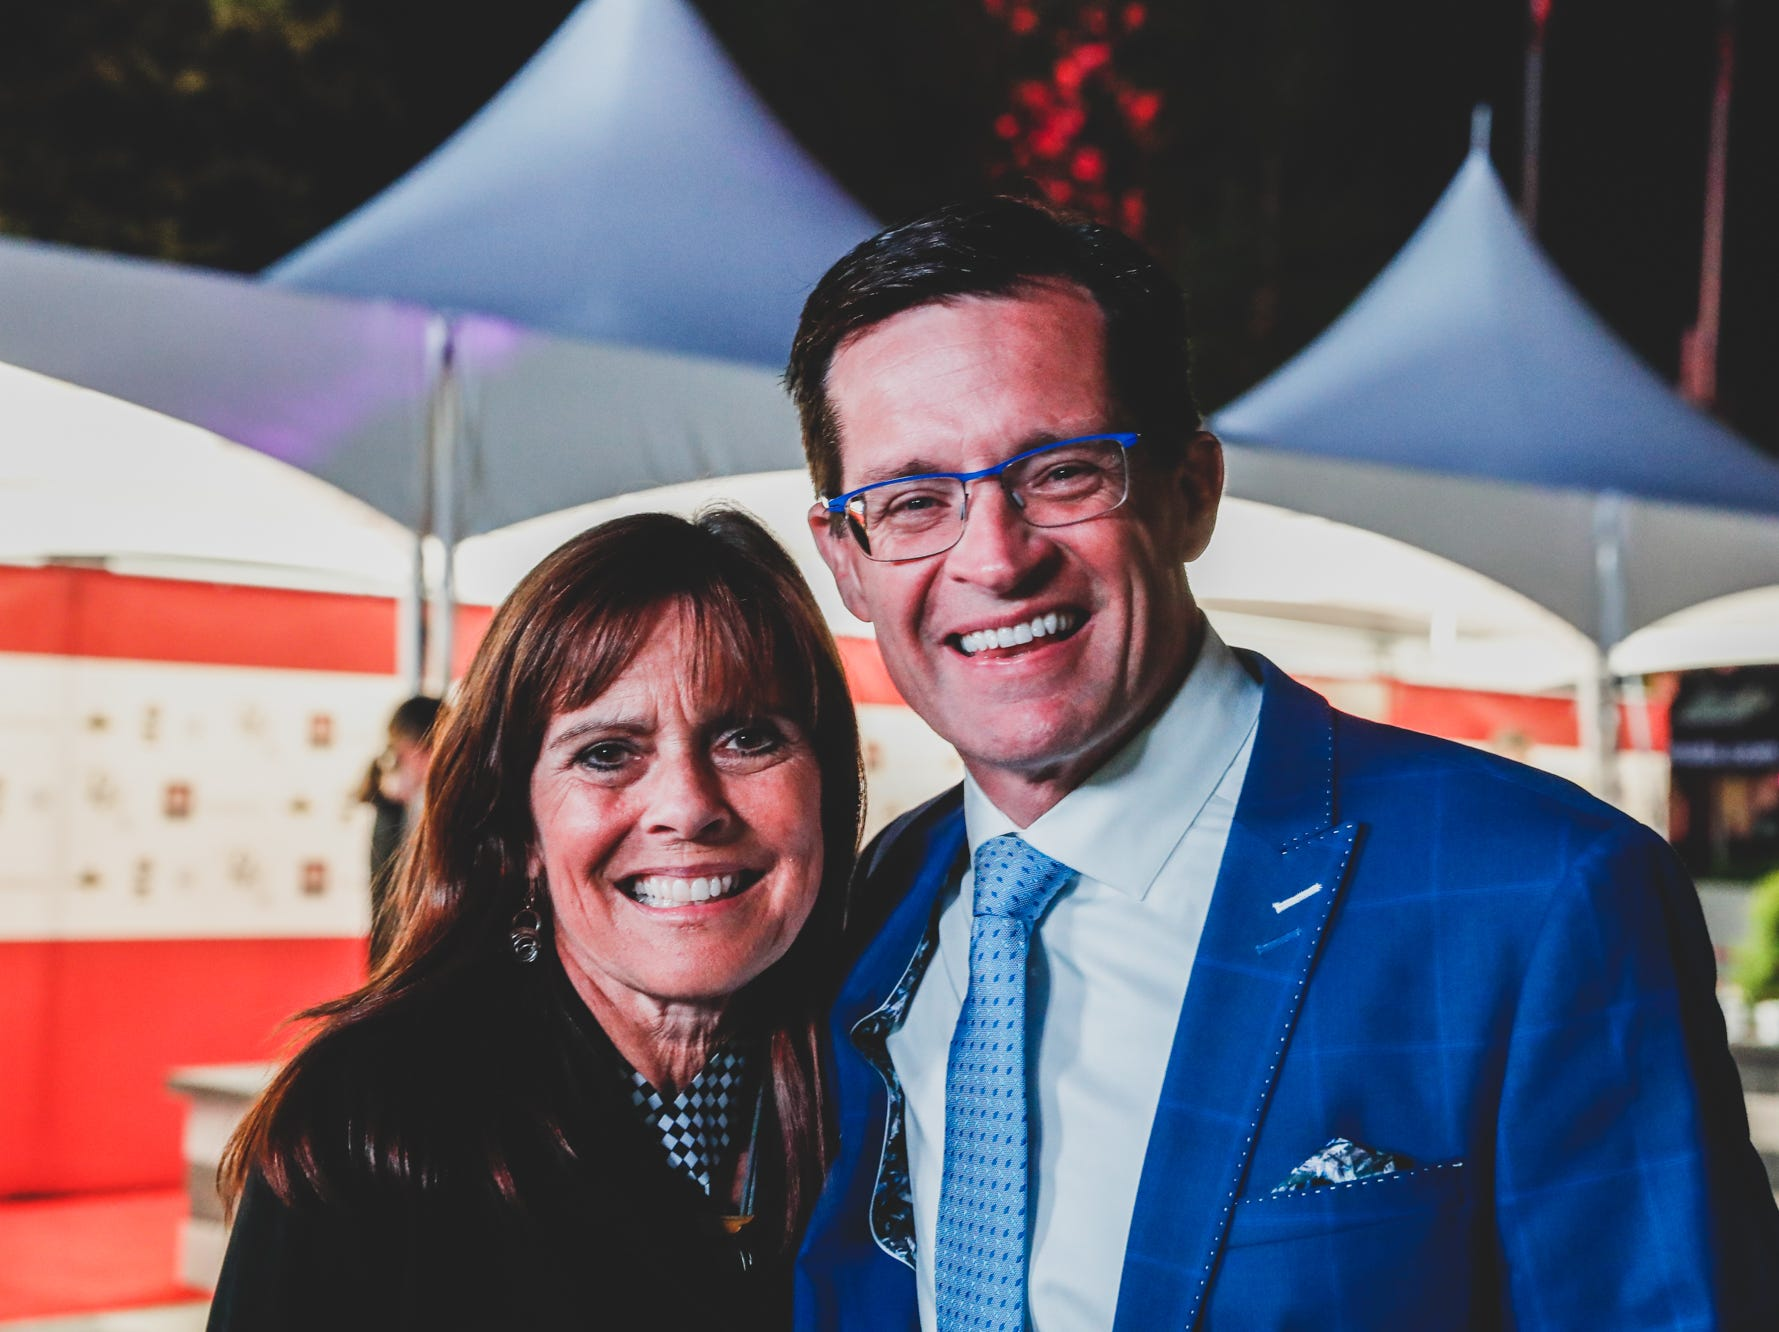 IMS President J. Douglas Boles and his wife Beth attend the Rev Indy fundraiser, held at the Indianapolis Motor Speedway on Saturday, May 4, 2019. Funds raised support the IU Health Foundation statewide and the IU Health Emergency Medical Center at IMS.